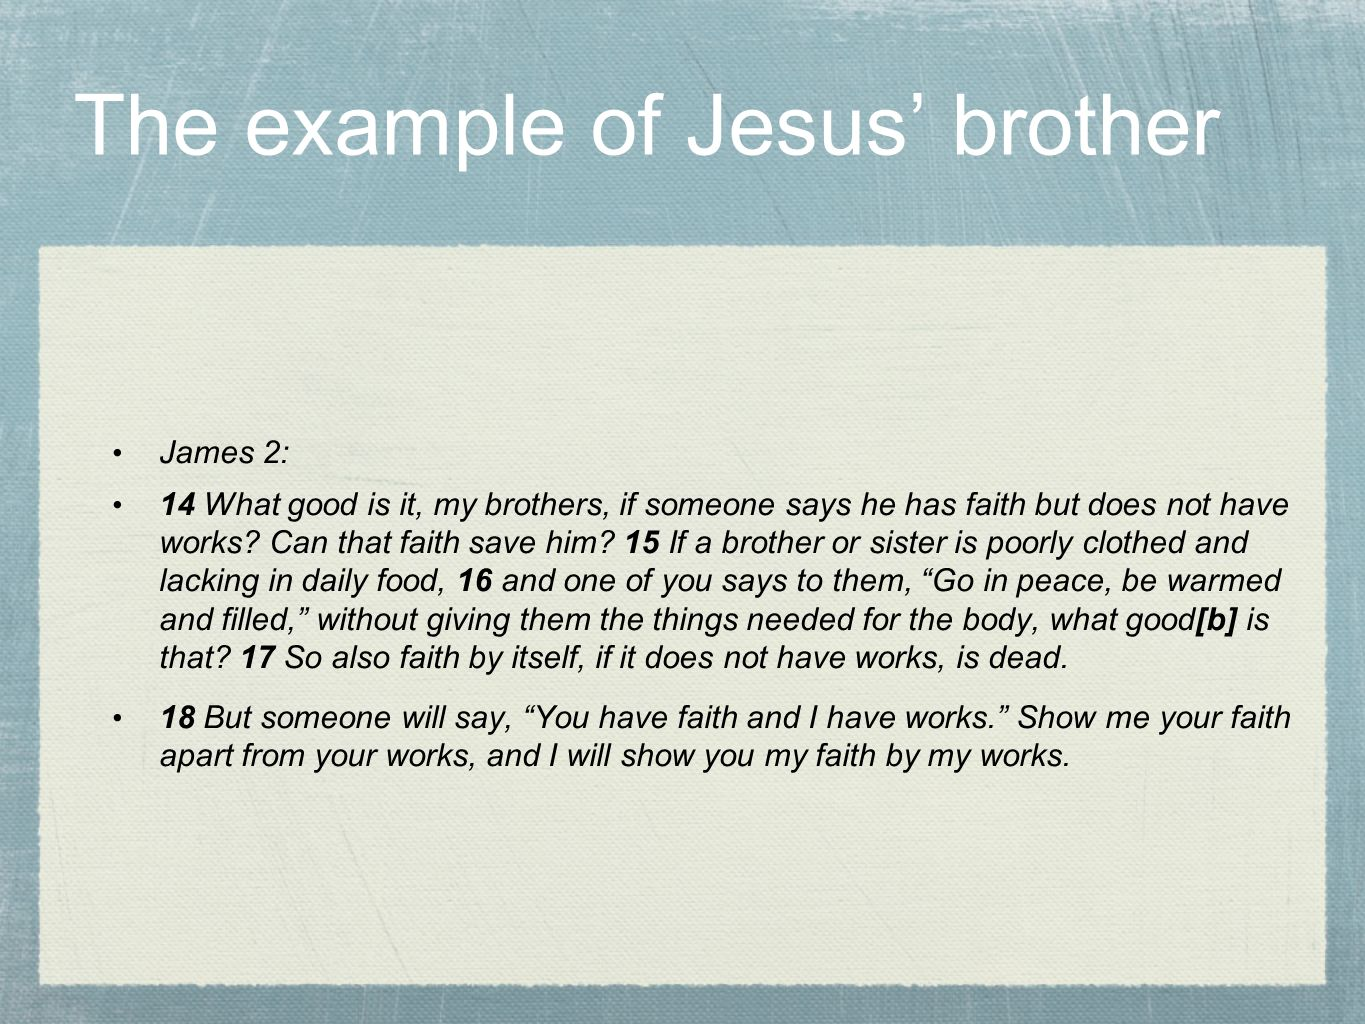 The example of Jesus' brother